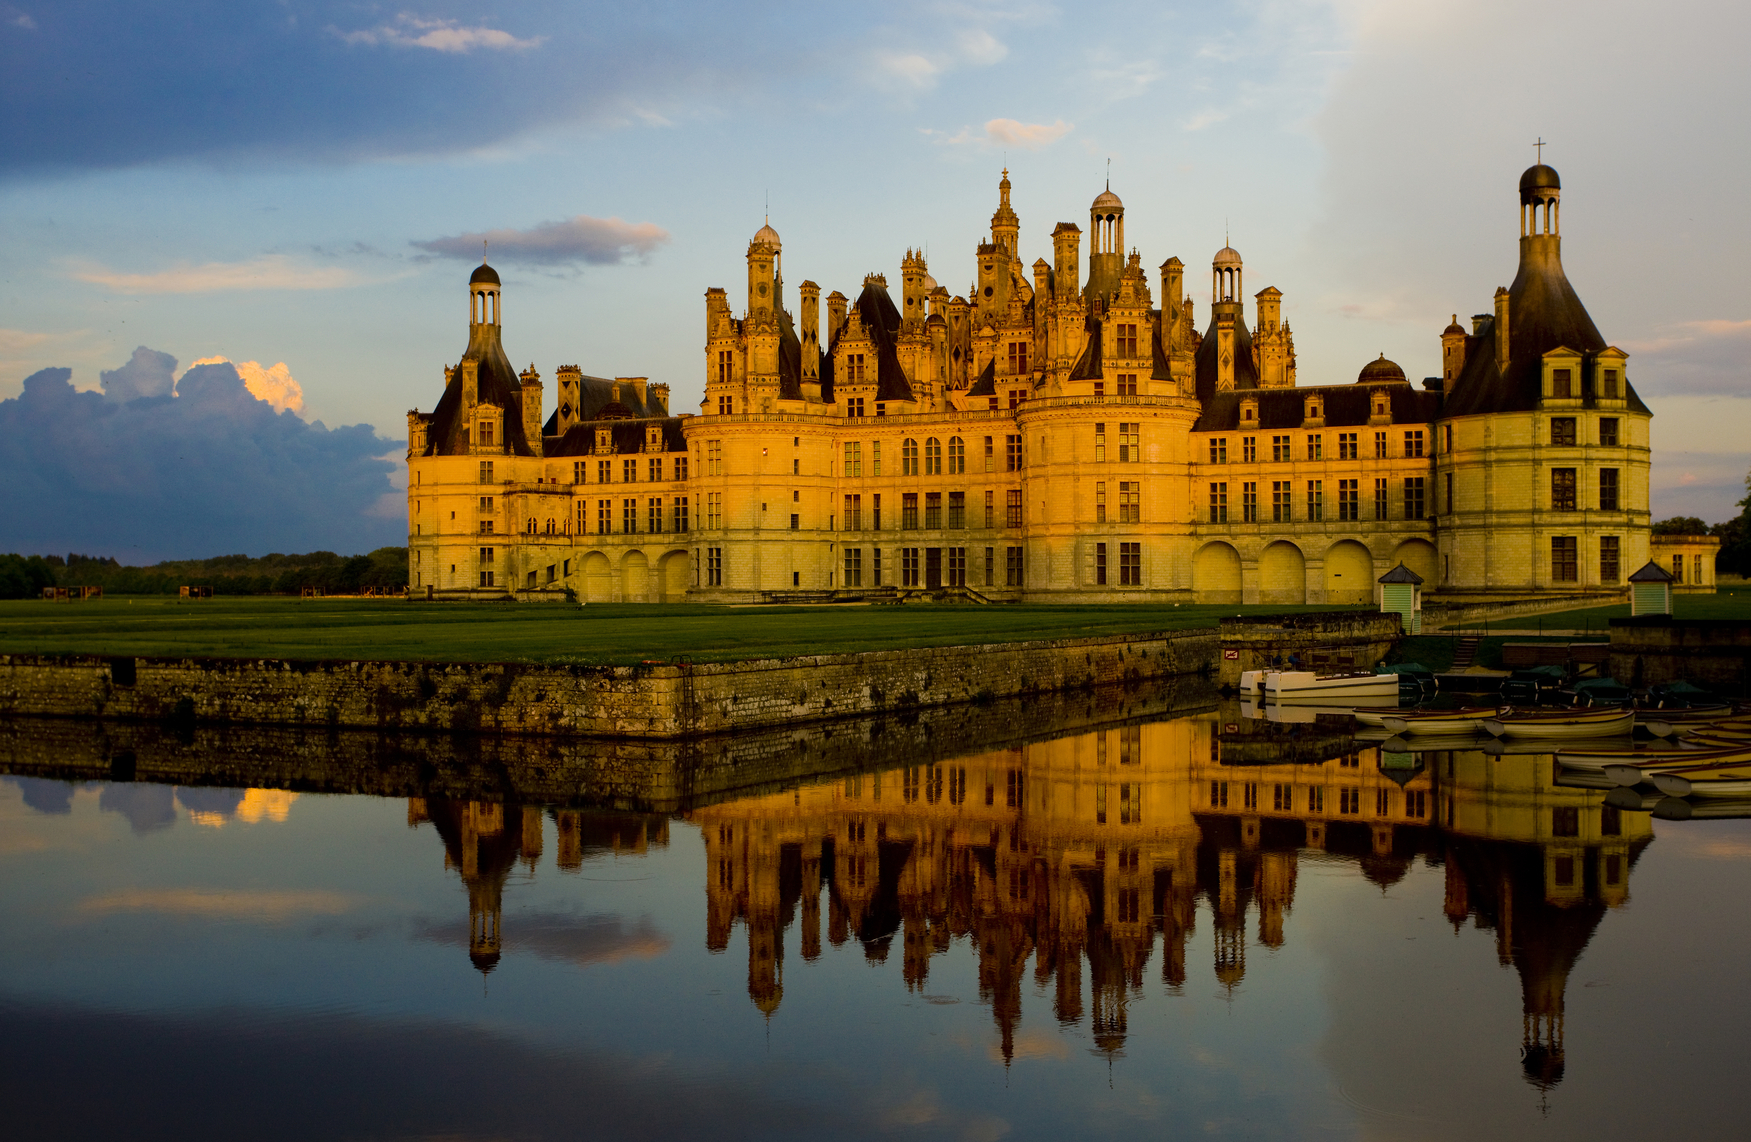 stockfresh_1027516_chambord-castle-loir-et-cher-centre-france_sizeM.jpg